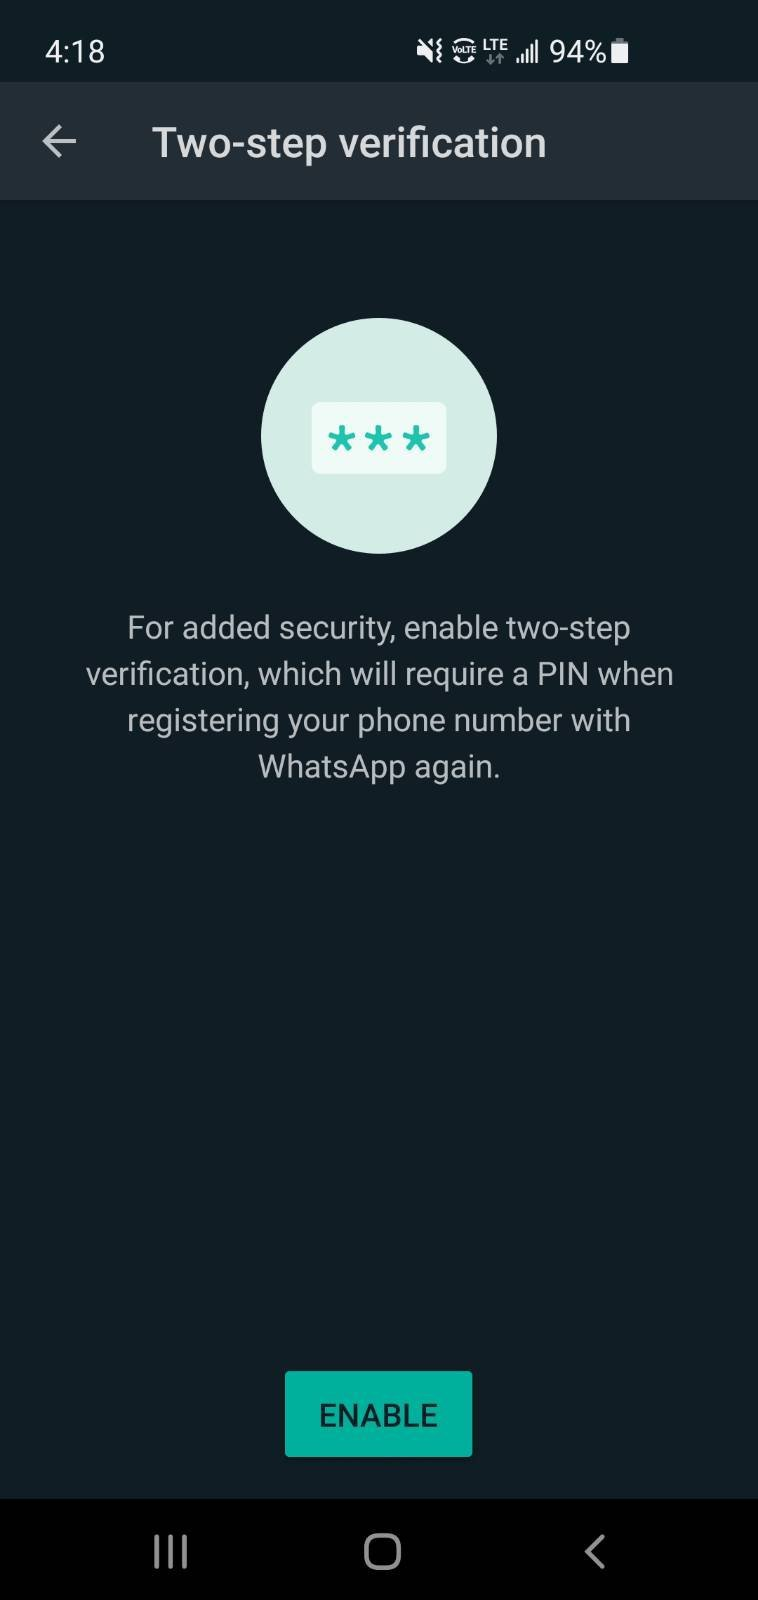 A screenshot of the WhatsApp two-step verification screen, prompting the user to enable a PIN to re-register for future registration of their WhatsApp account.